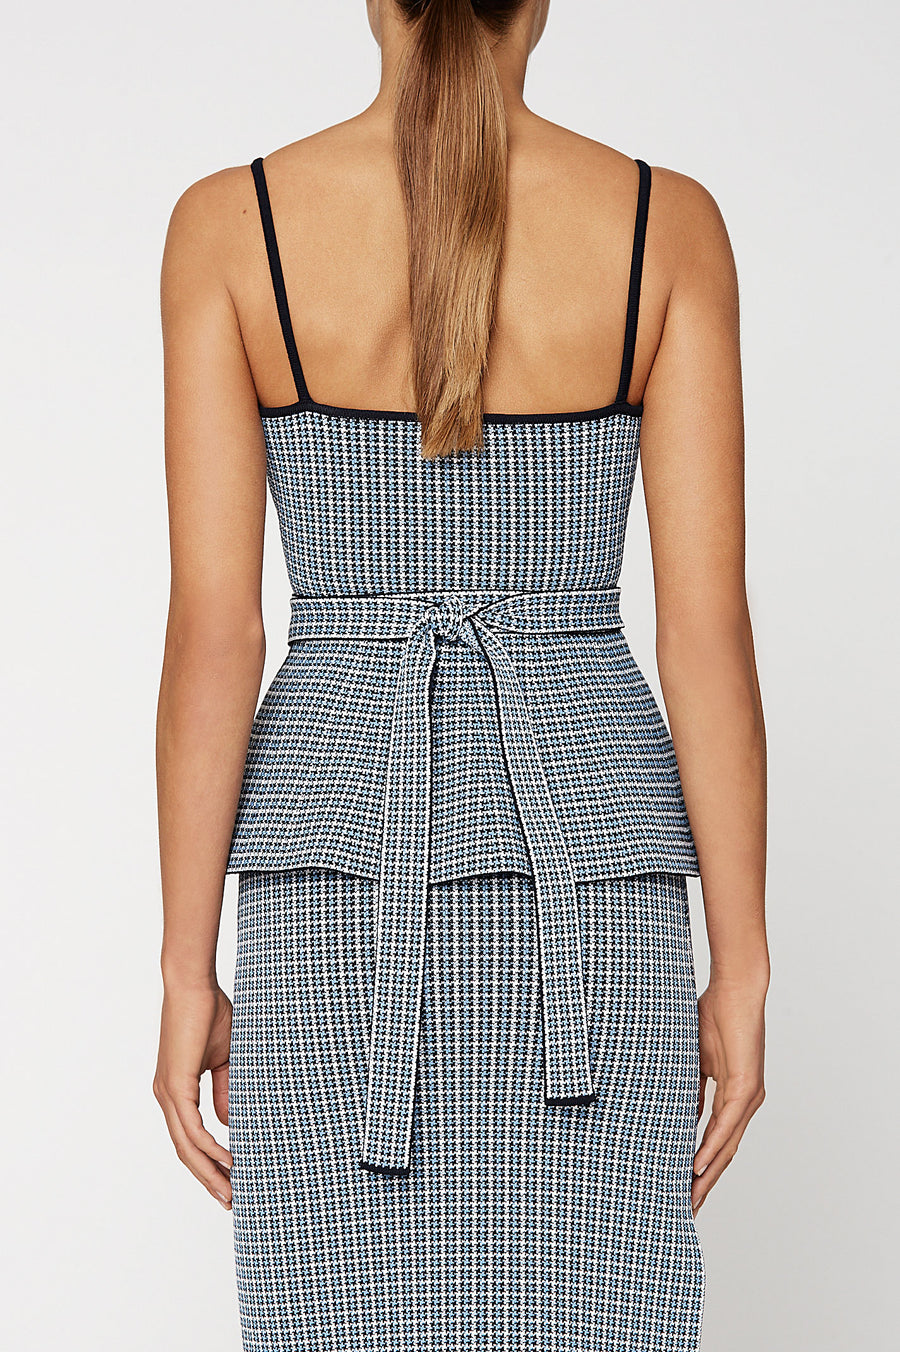 CREPE KNIT PLAID STRAPPY TOP, PALE BLUE color